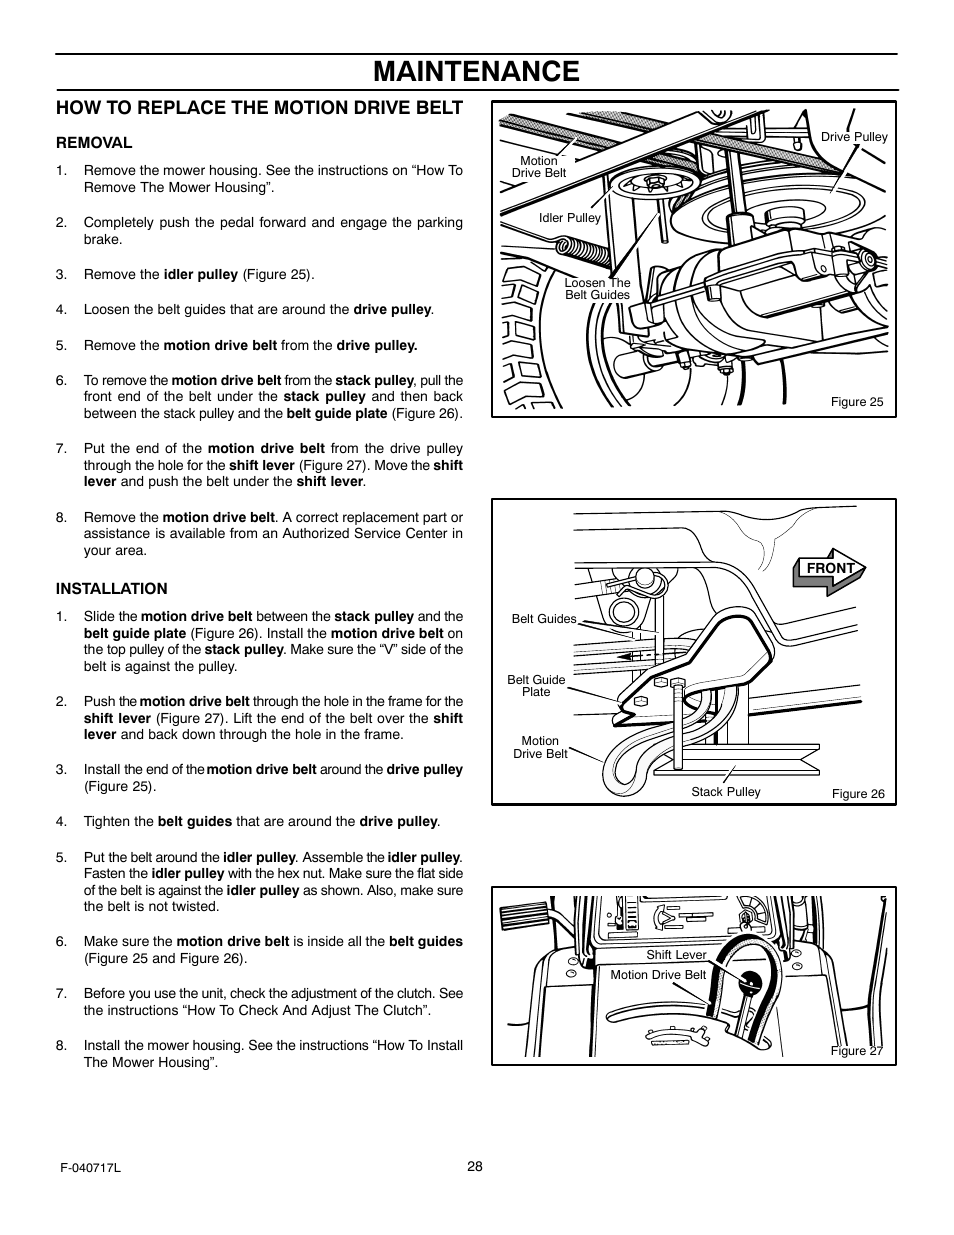 Maintenance, How to replace the motion drive belt | Murray 387002x92A User  Manual | Page